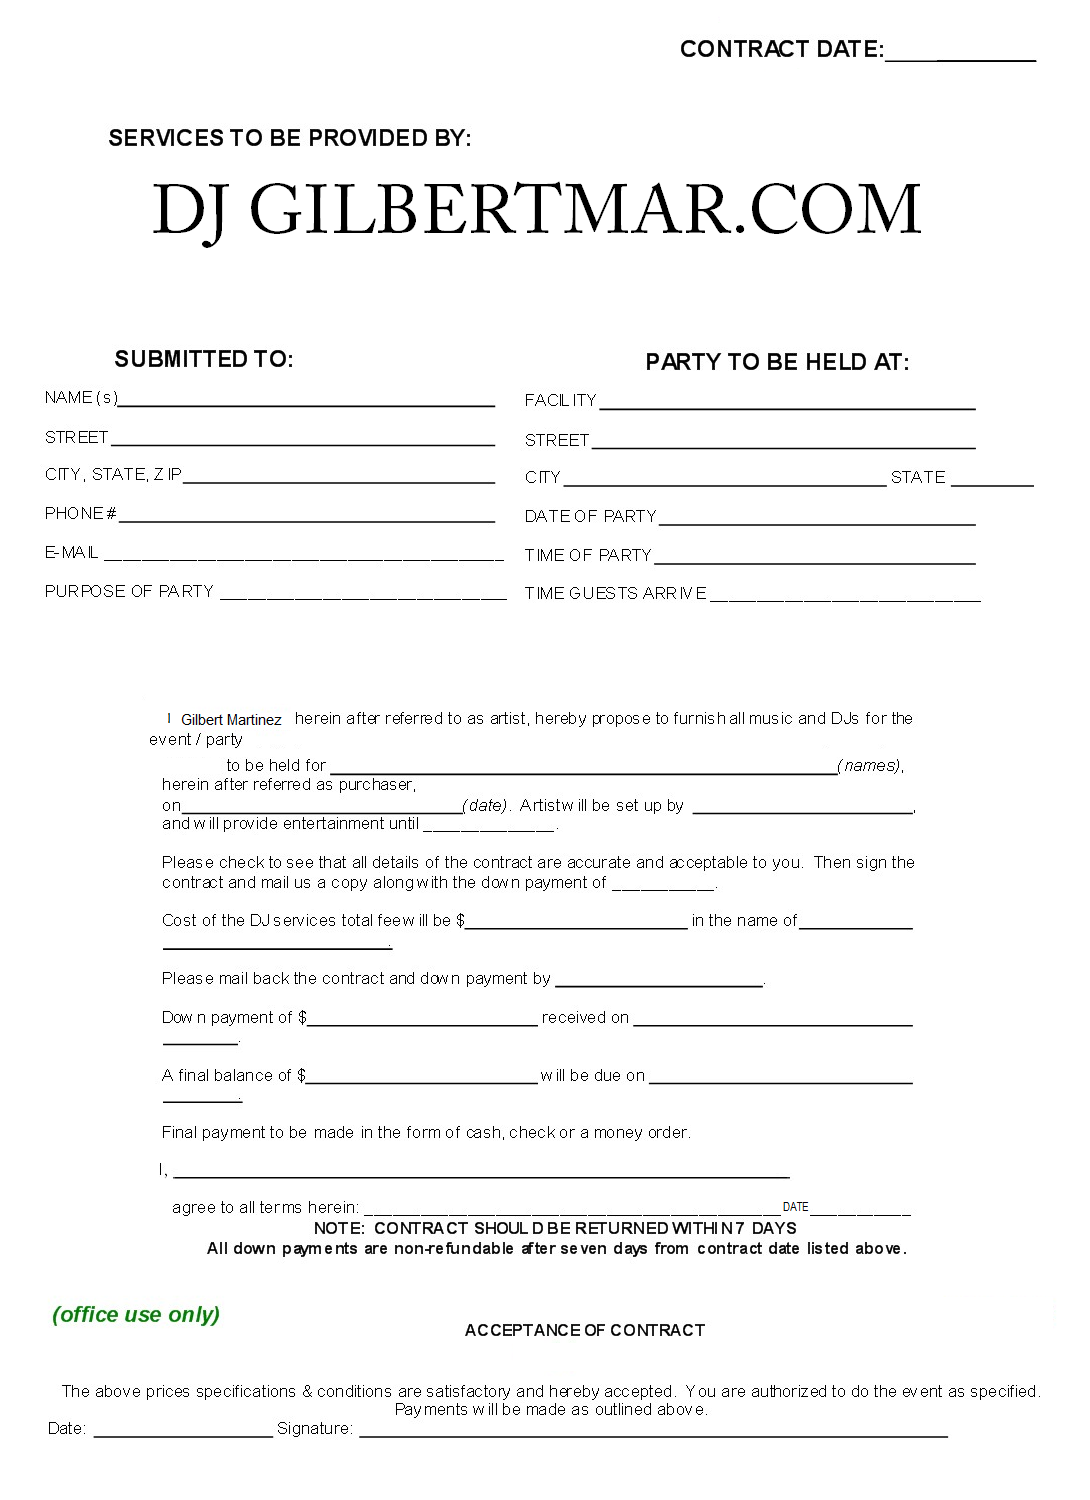 Dj contract template playbestonlinegames for Mobile dj contract template